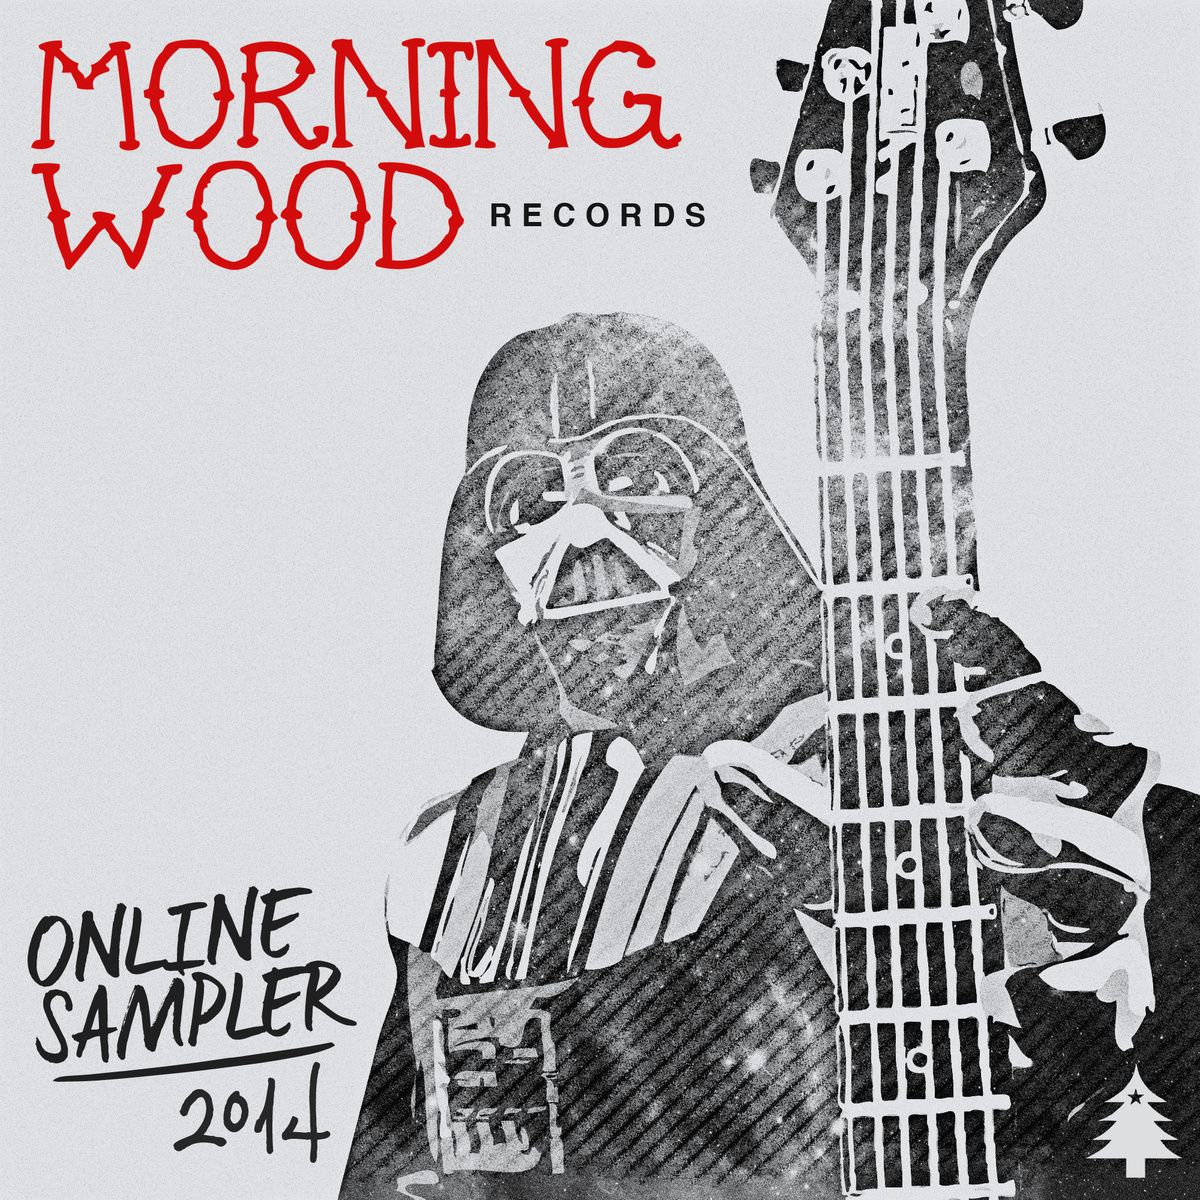 Morning Wood Records release online sampler '14